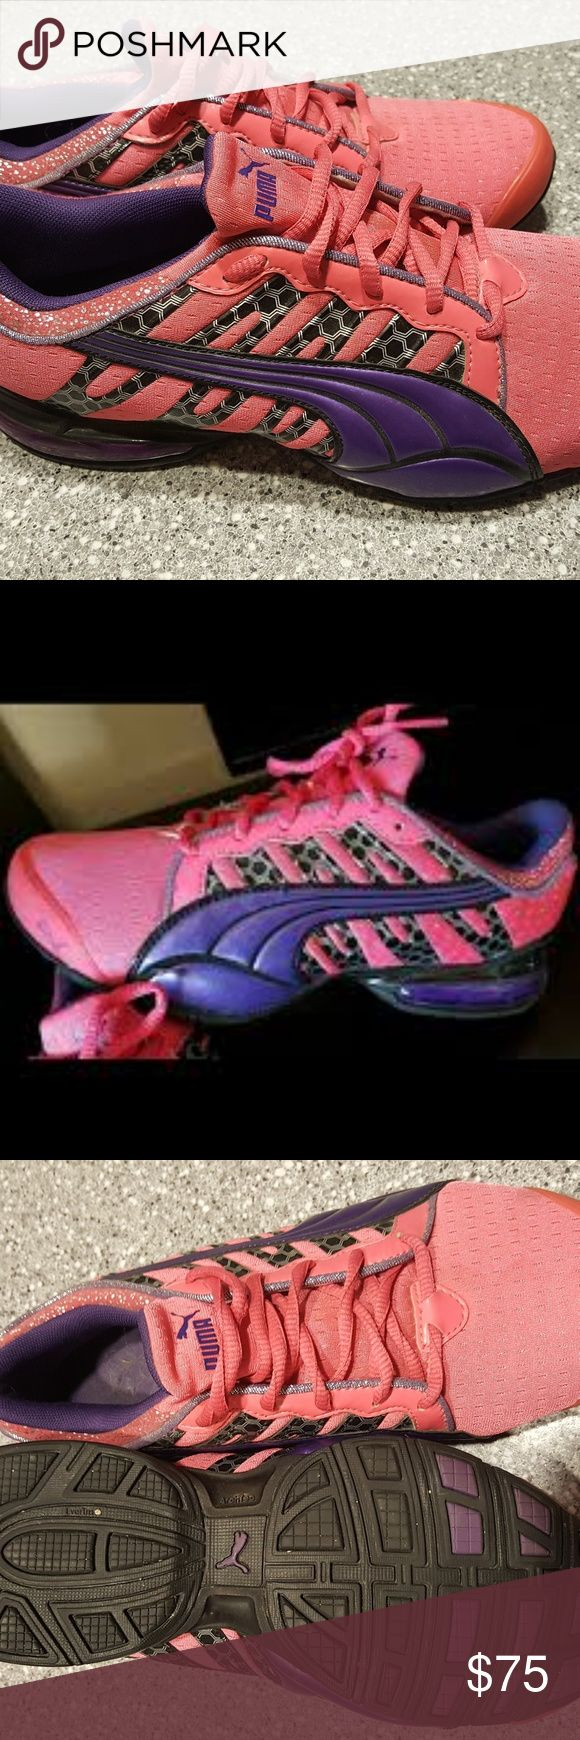 Women's sz 9 hot pink Puma tennis shoes Lightly used women's size 9 hot pink, purple and black puma athletic shoes. These are hard to find. Only wore them a couple times, minor signs of use! Paid $100 brand new! Puma Shoes Athletic Shoes